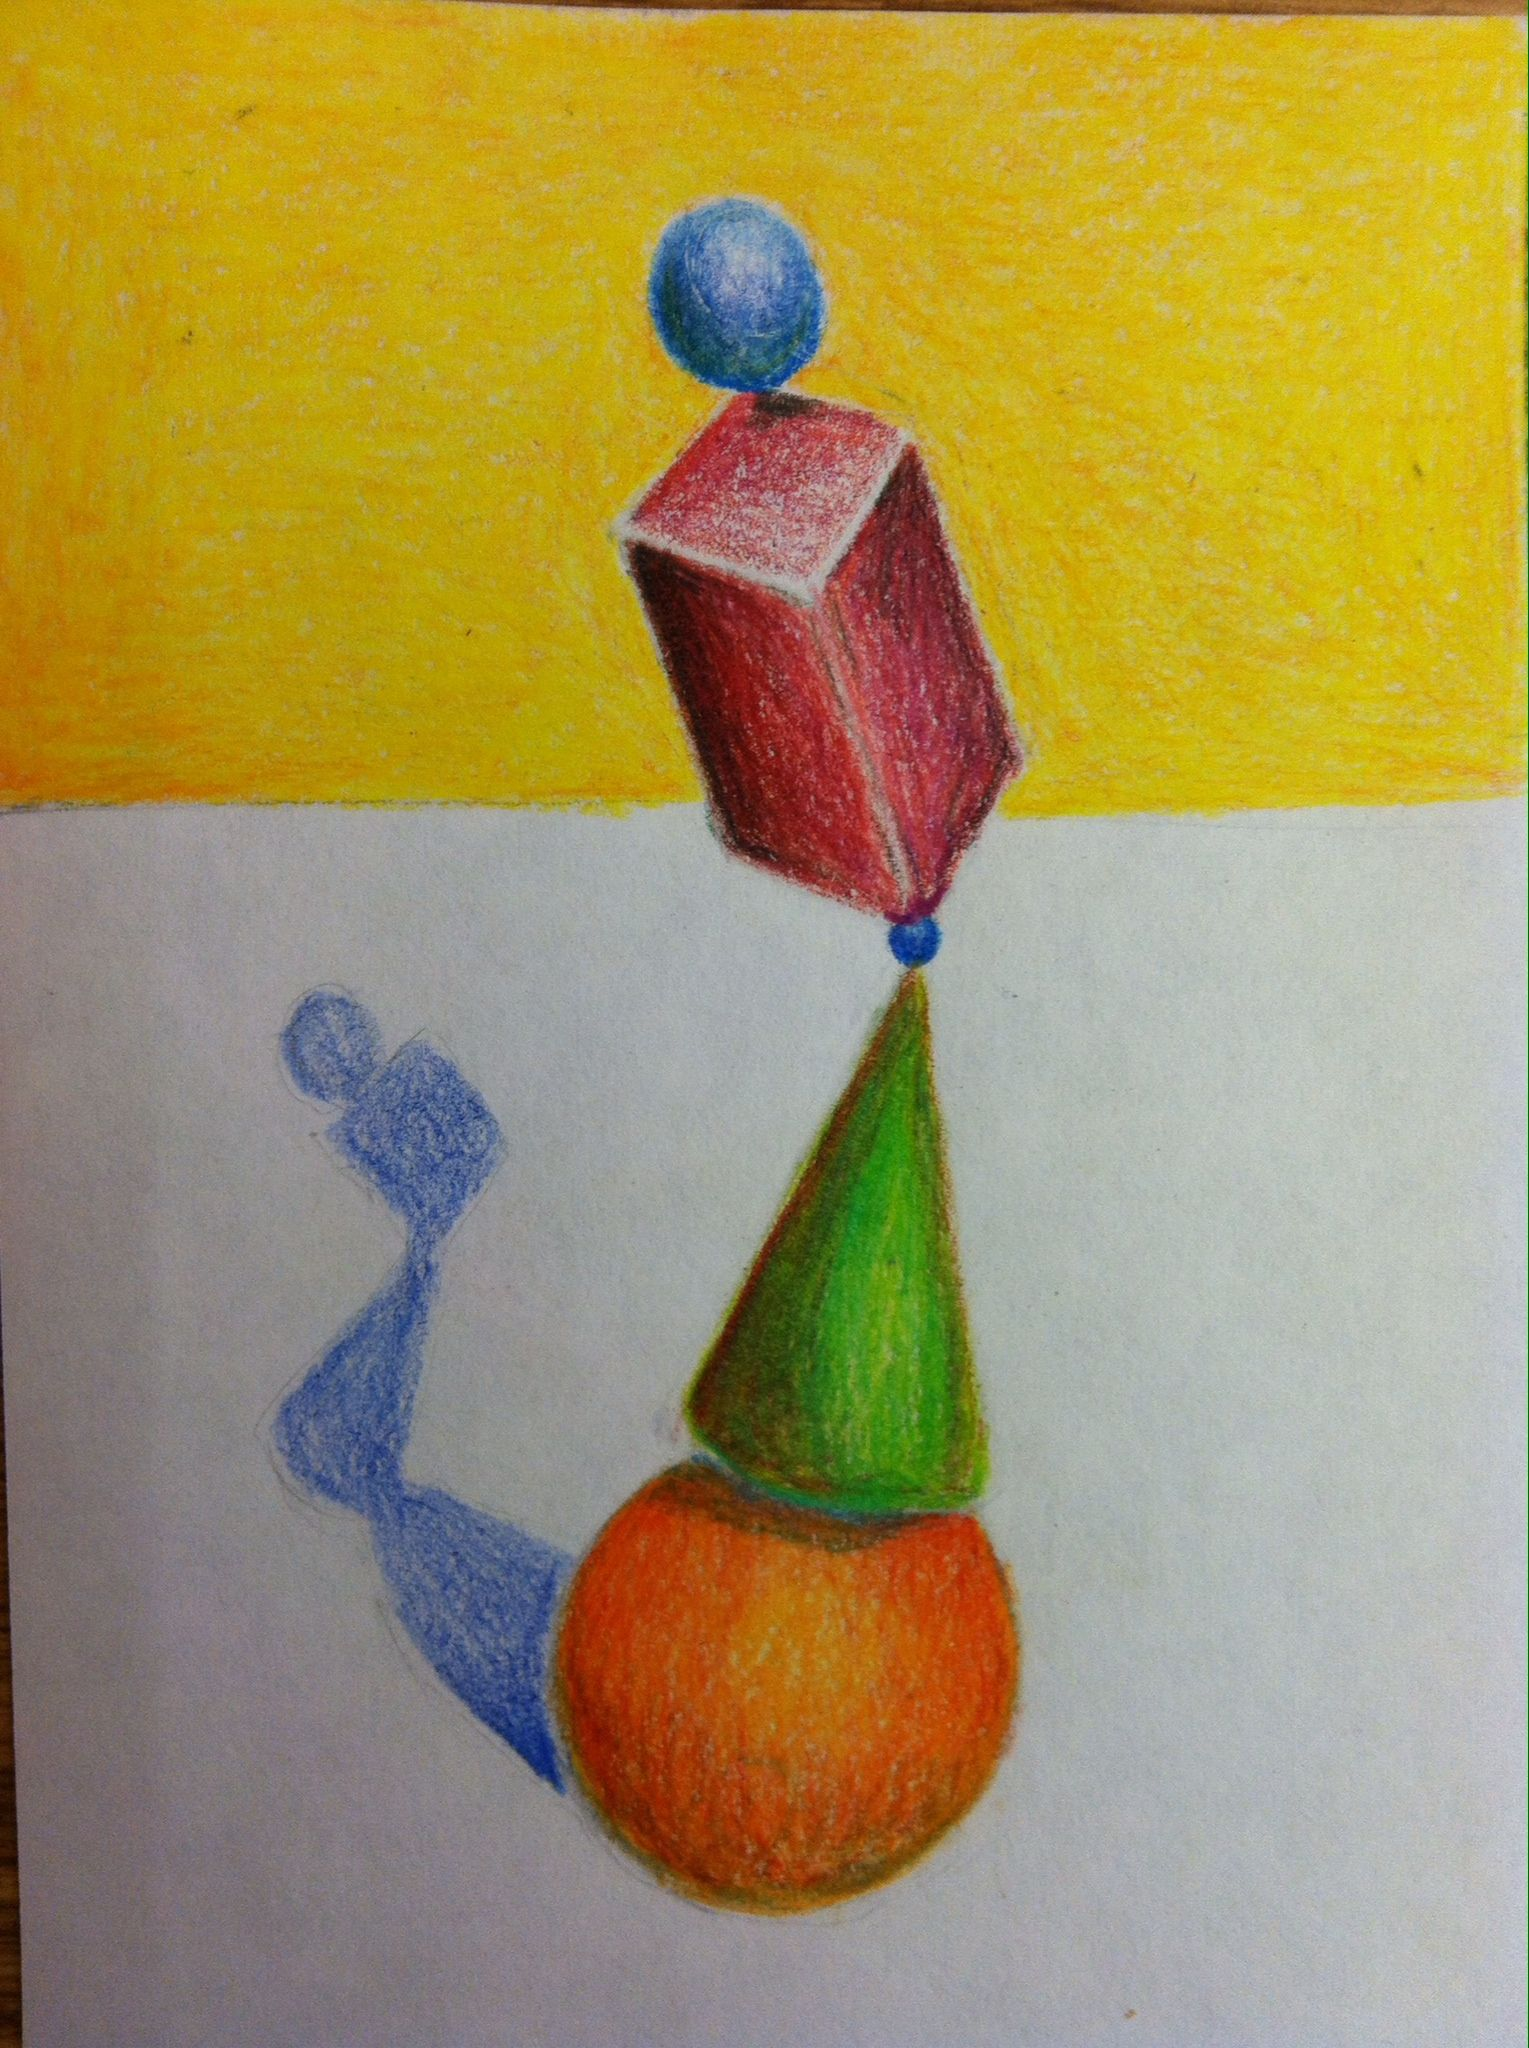 Colored Pencil Blending Exercise Shape Tower